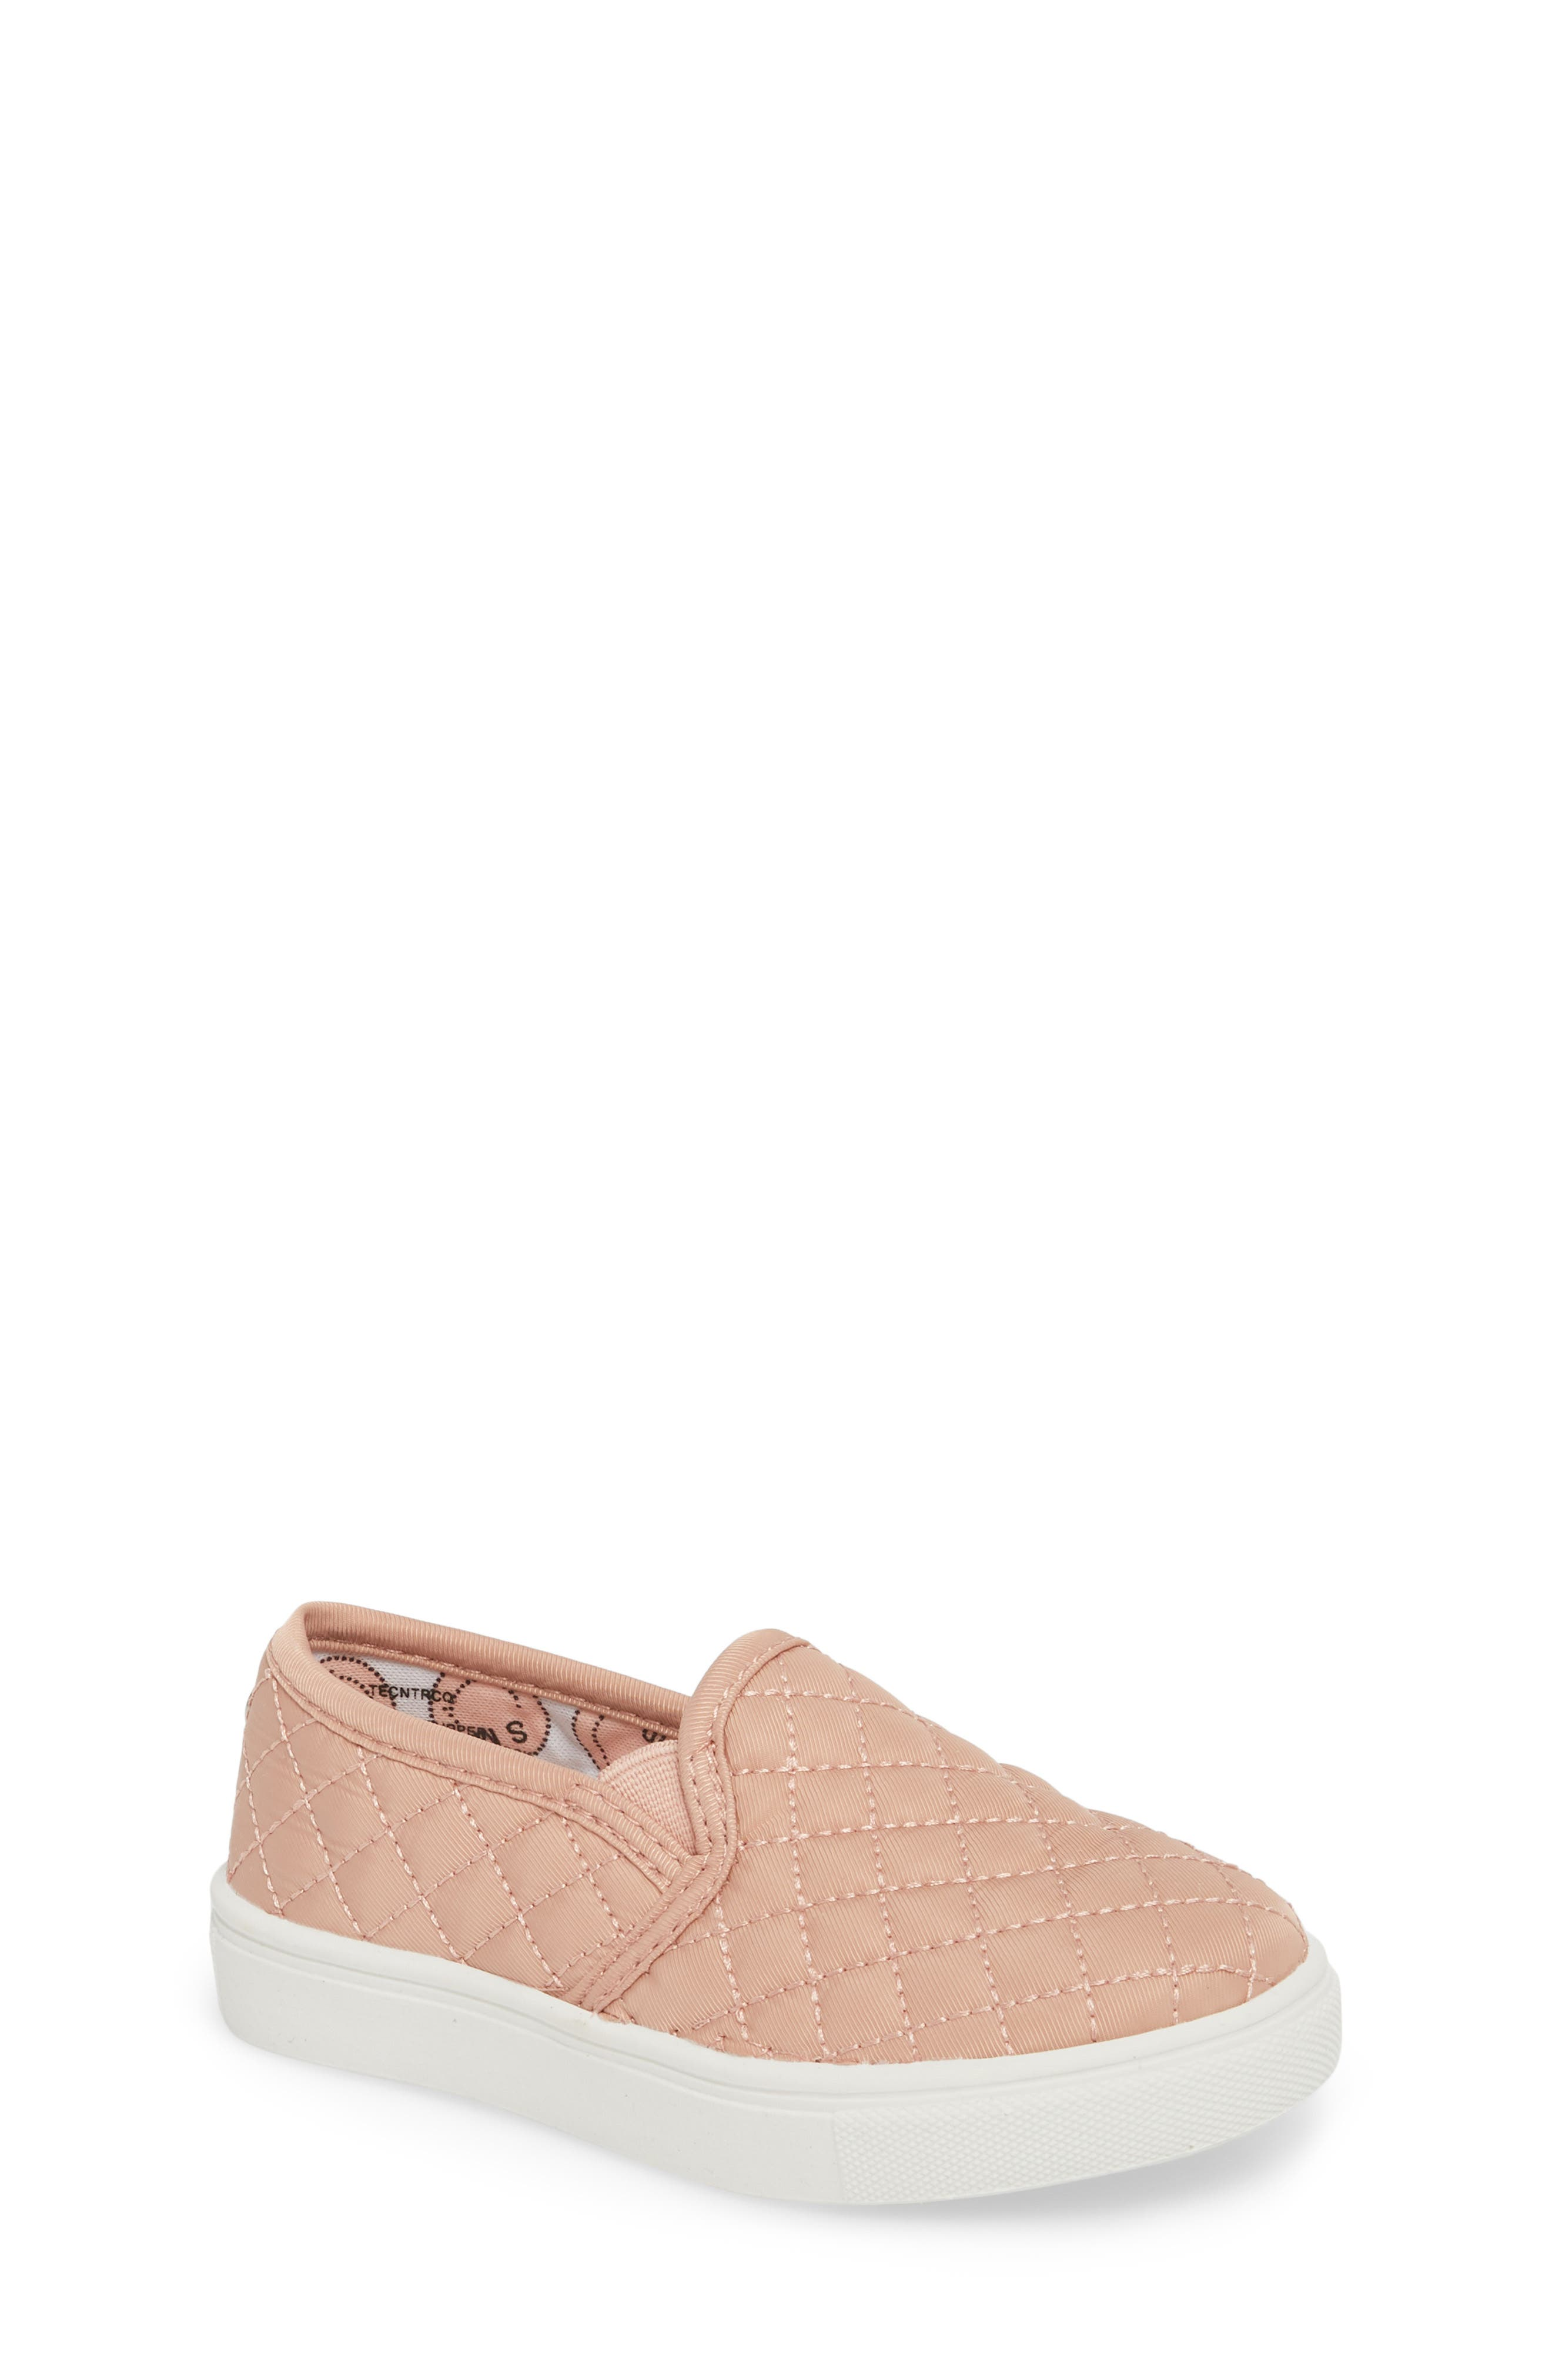 Tecntrc Quilted Slip-On Sneaker,                             Main thumbnail 1, color,                             BLUSH